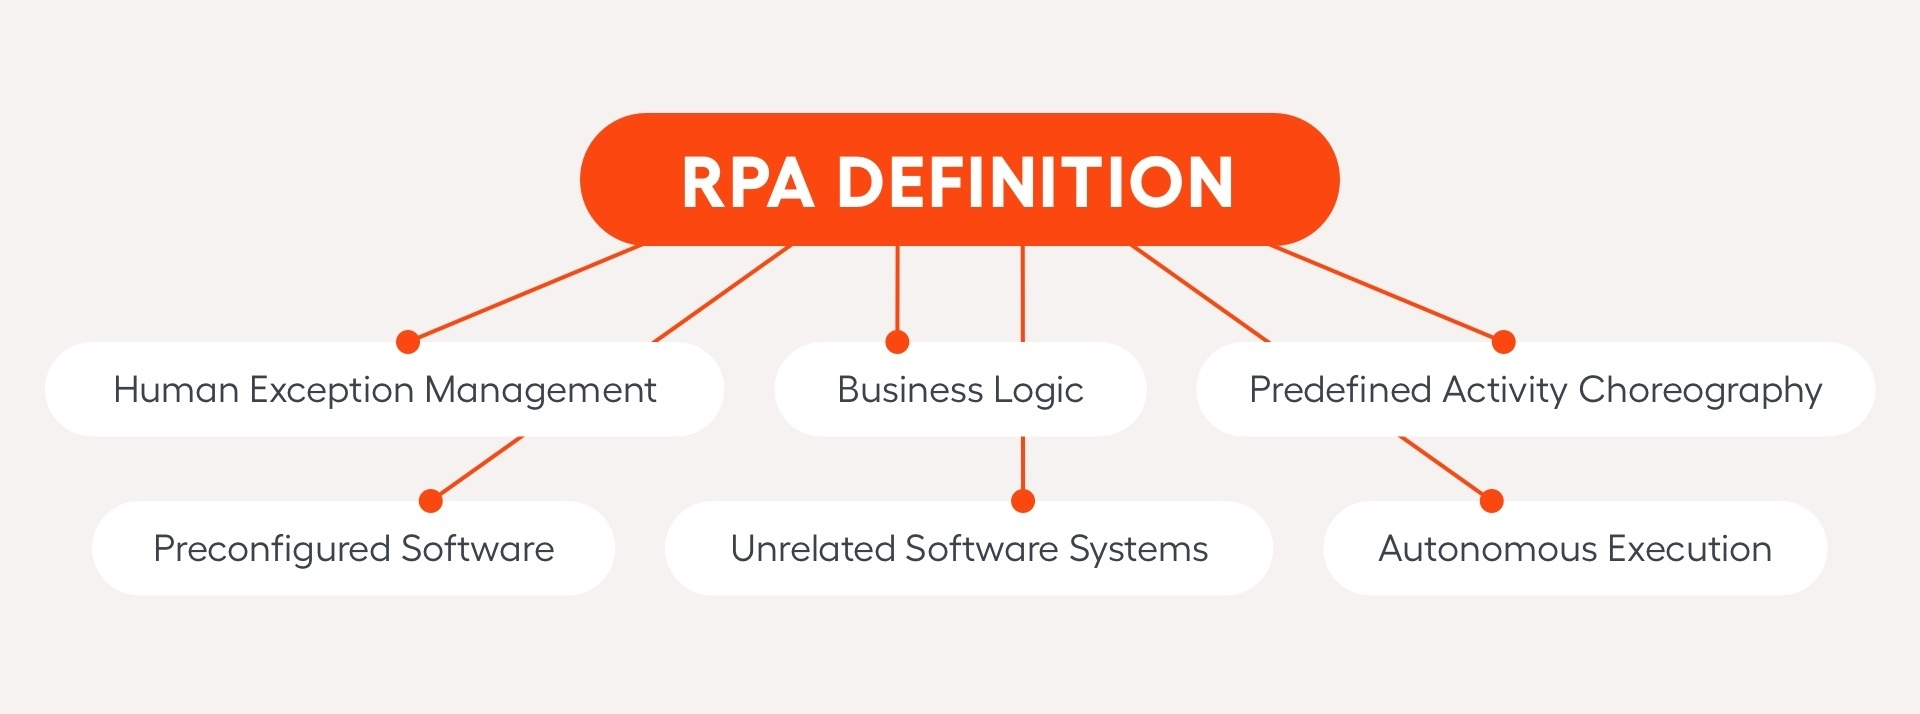 rpa definition